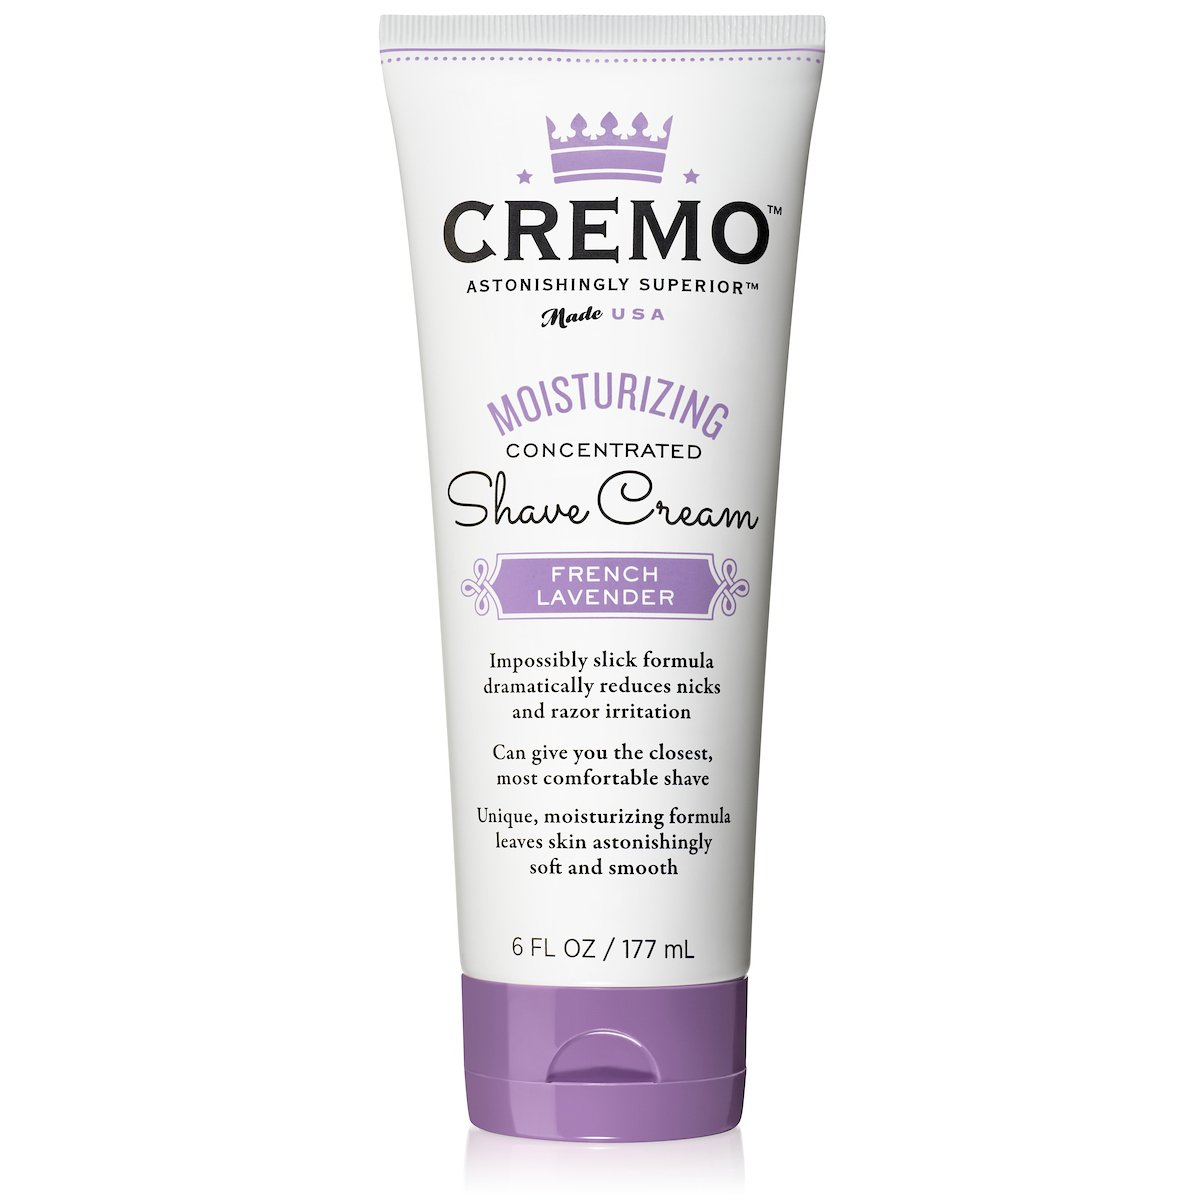 Cremo French Lavender Moisturizing Shave Cream, Astonishingly Superior Shaving Cream For Women, Fights Nicks, Cuts And Razor Burn, 6 Ounces